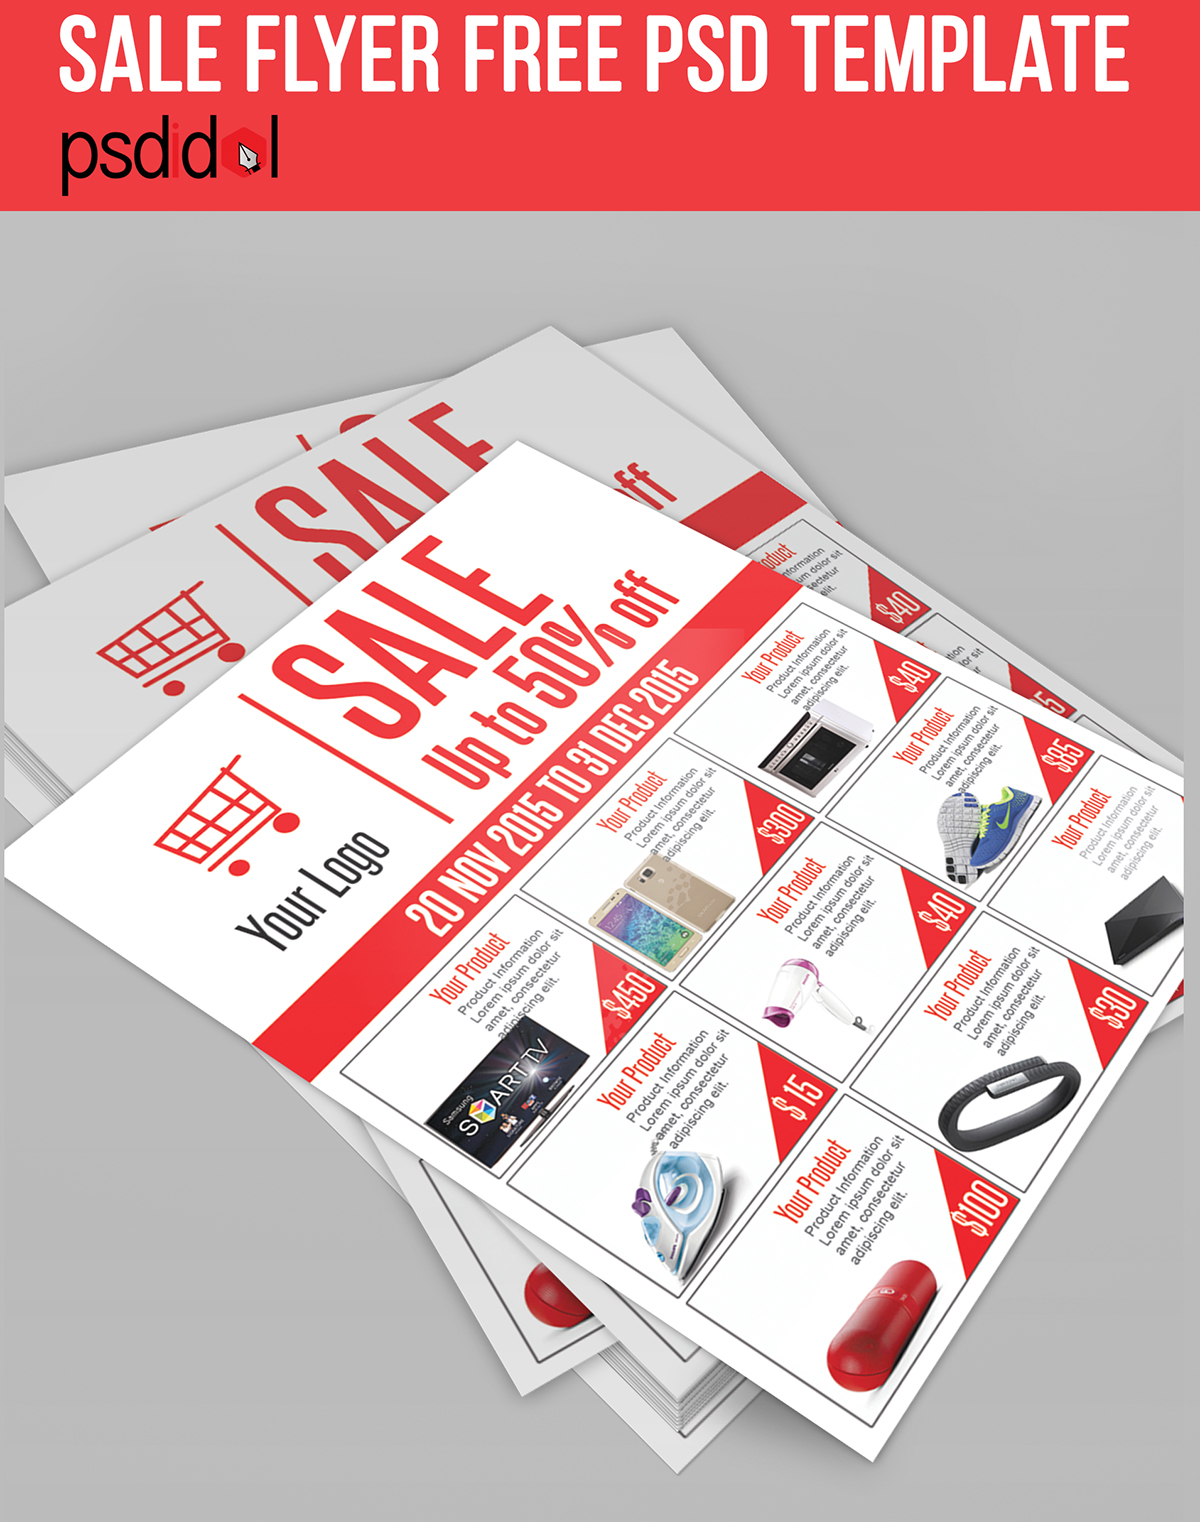 Sale Flyer Free PSD Template Download On Behance - Brochure template download